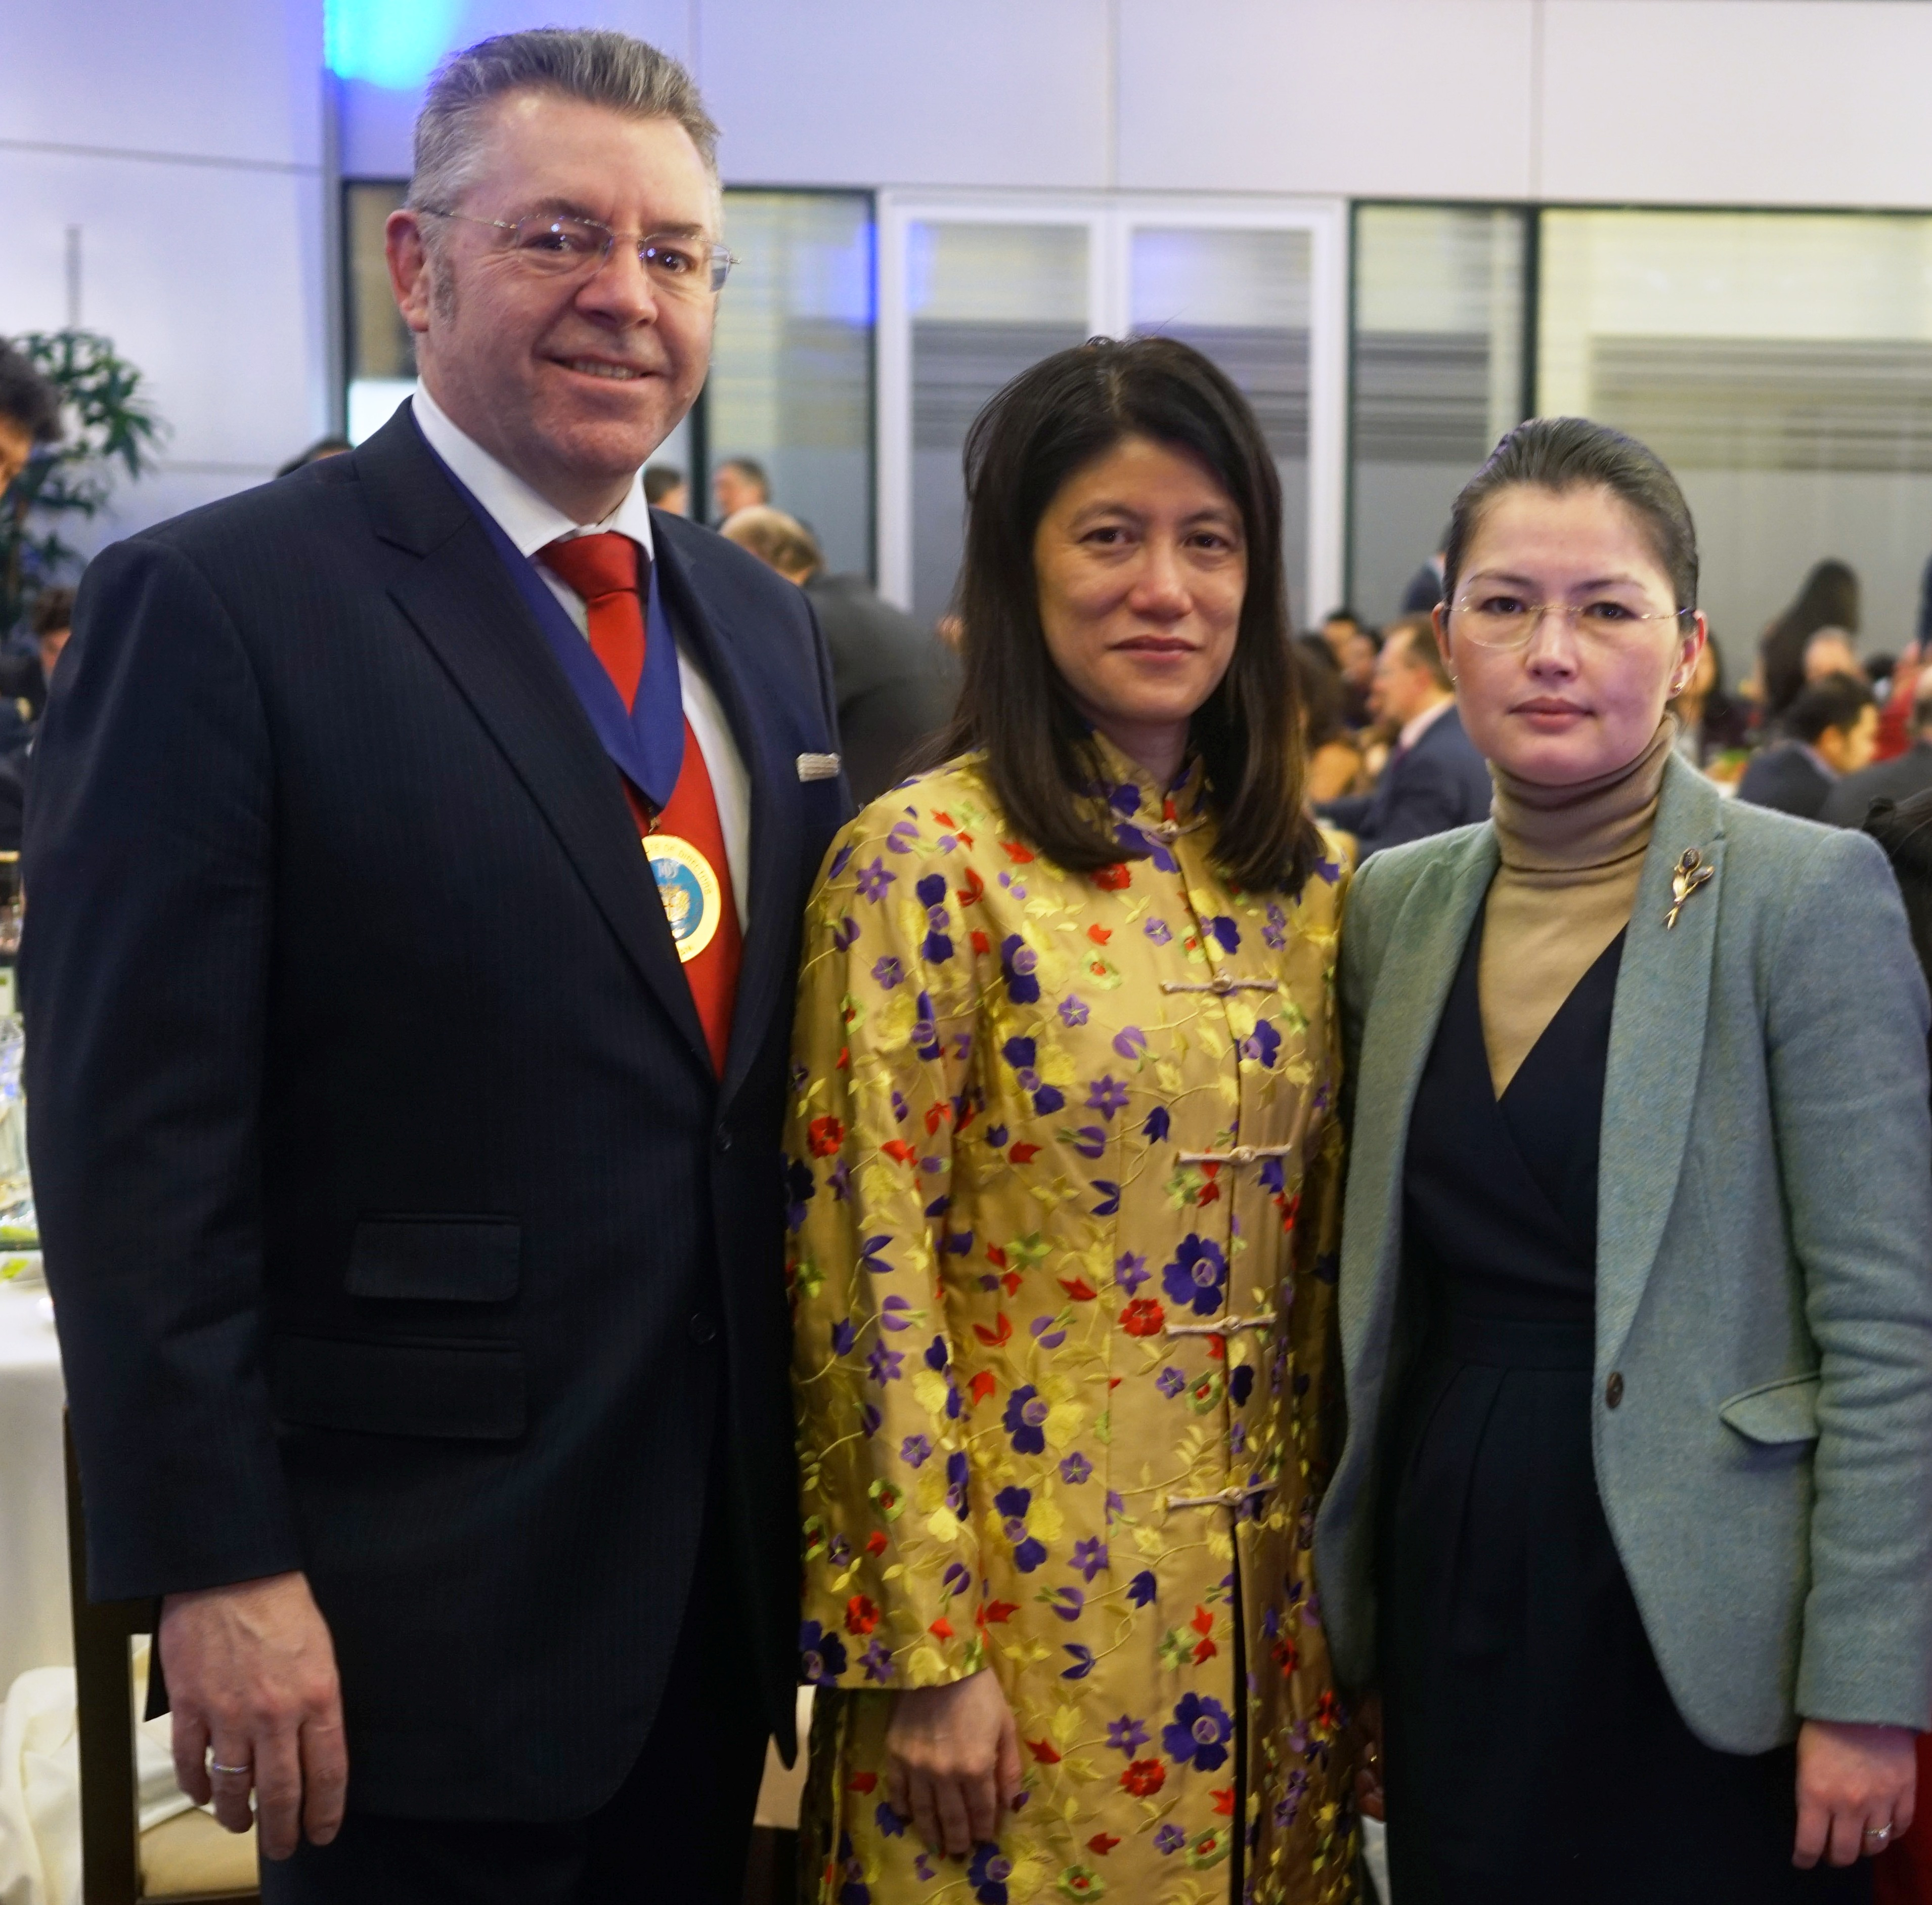 Right to left: Mrs Ainur Karbozova, First Secretary, Embassy of Kazakhstan, HE Ms Foo Chi Hsia, the High Commissioner of Singapore and David Stringer-Lamarre